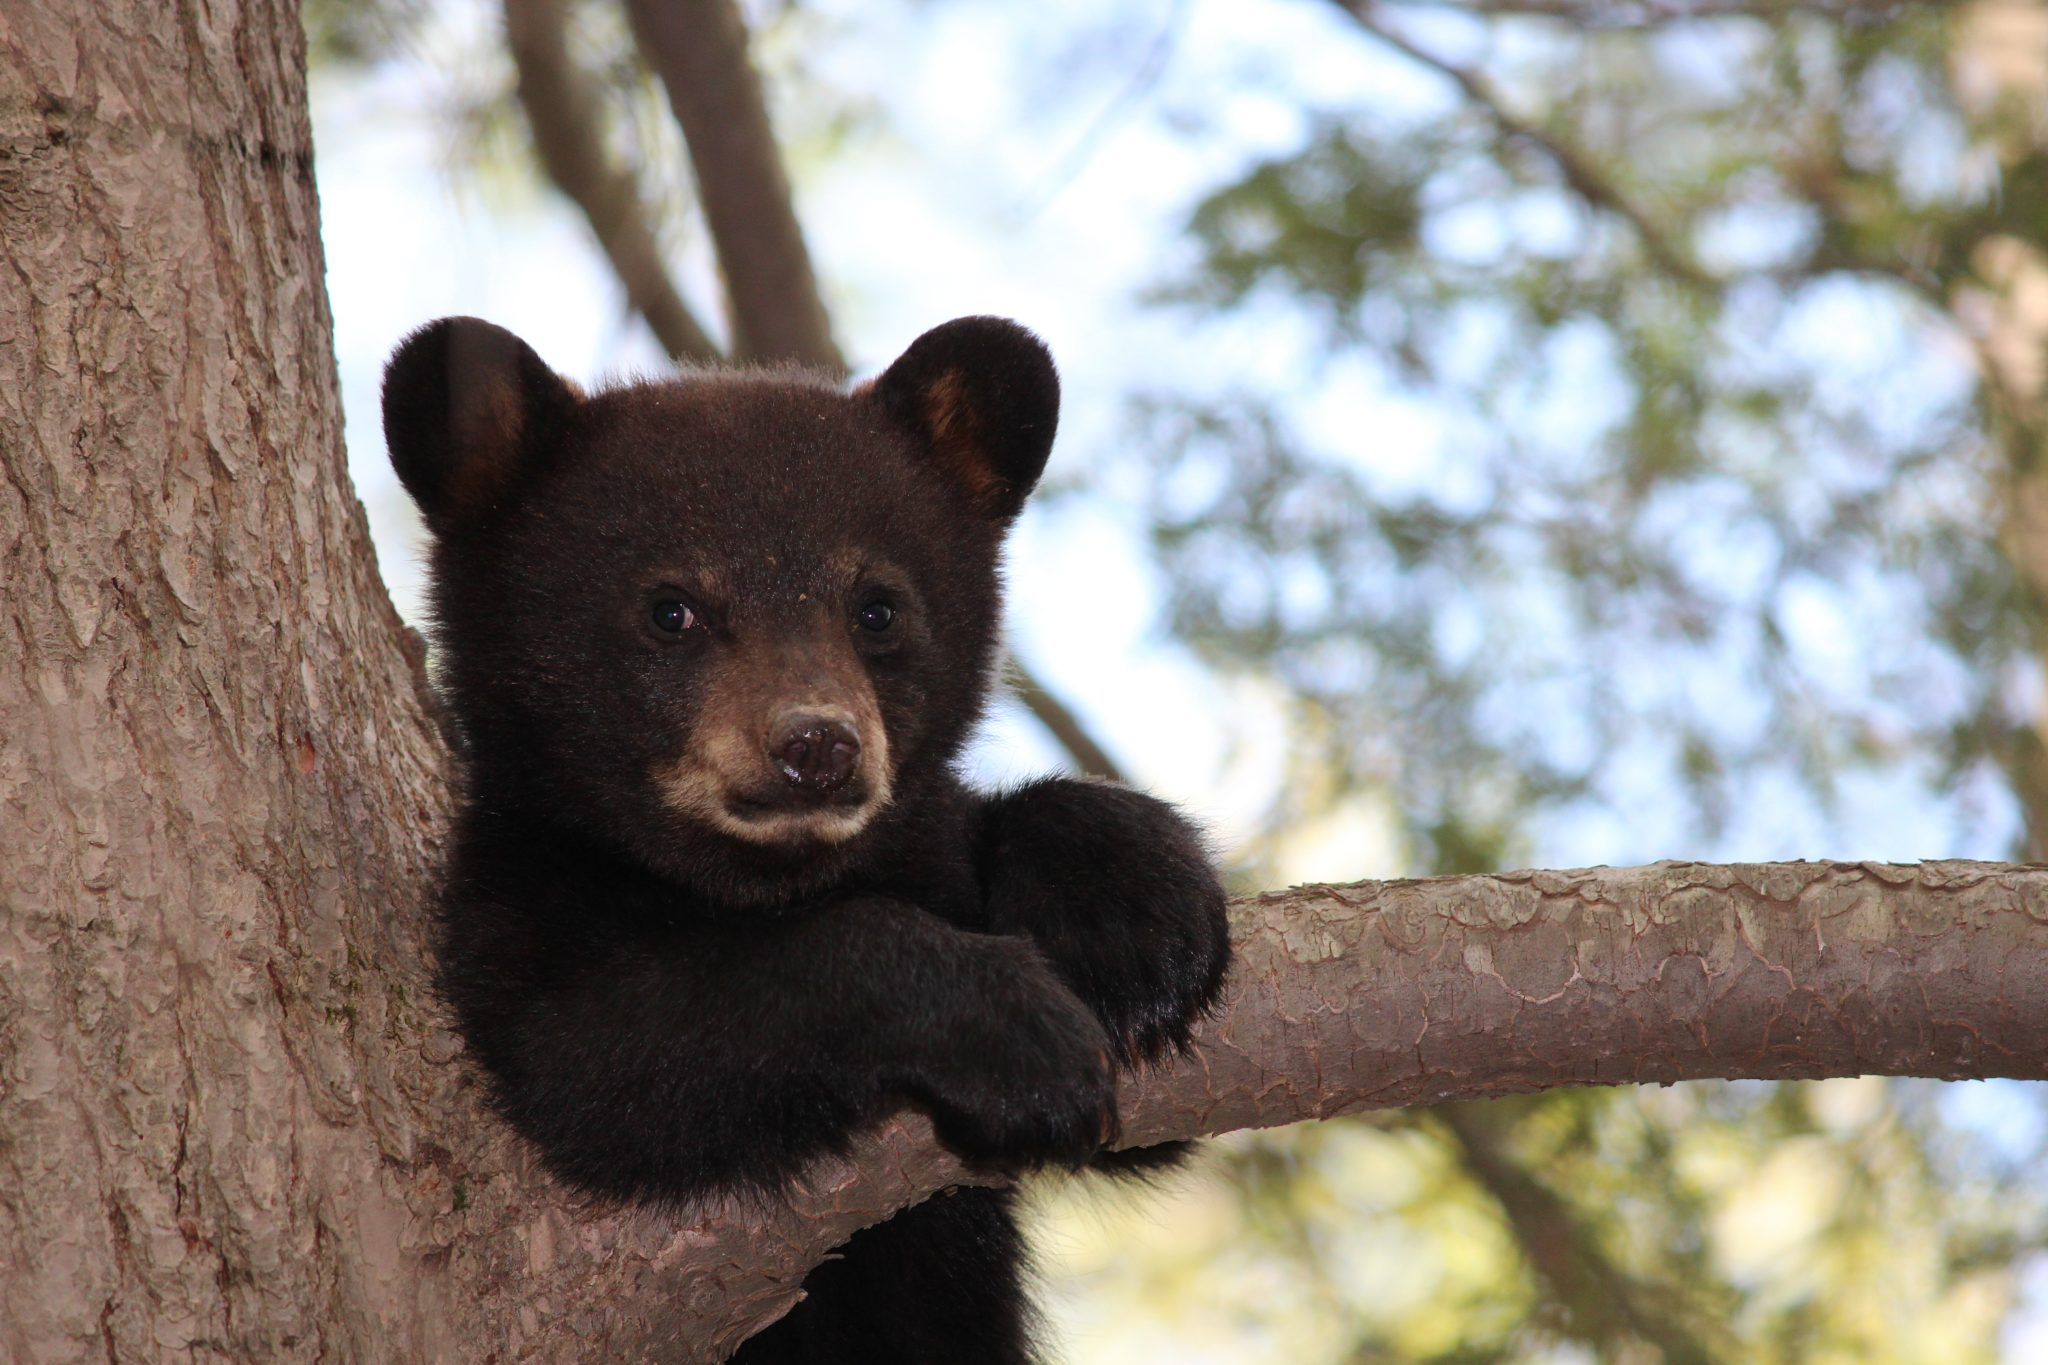 Petition: Stop Black Bear From Getting Euthanized Because Humans Encroached on His Habitat